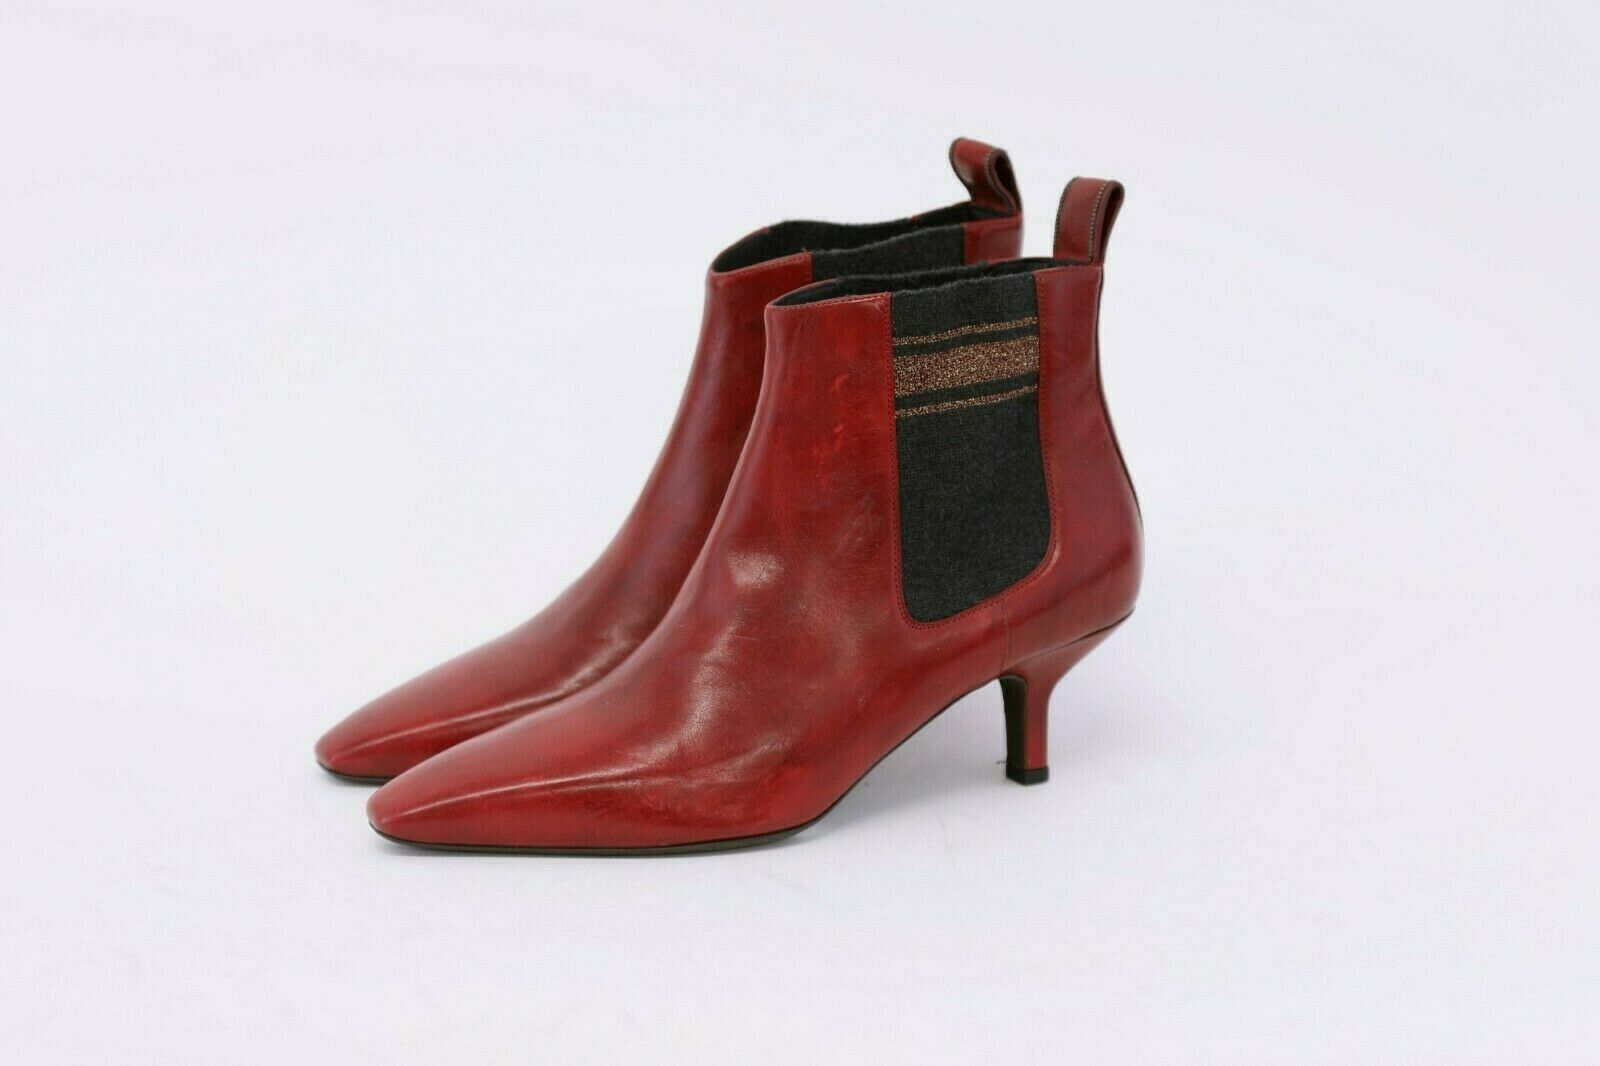 NWOB 1295 Brunello Cucinelli Leather +Beaded Detail Chelsea Booties 40 10US A191